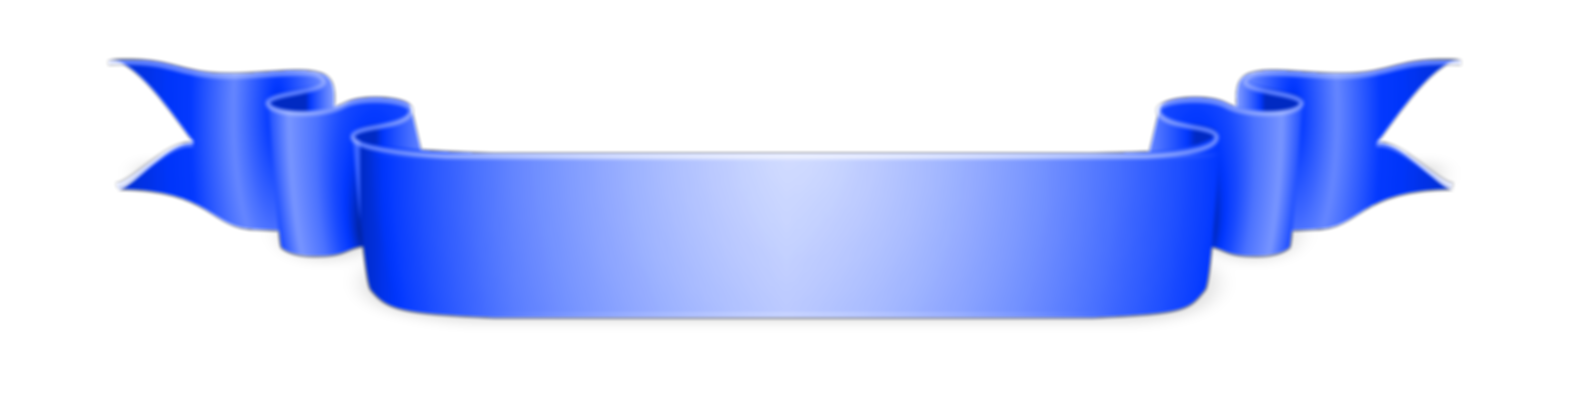 ribbon-blue-png-8.png